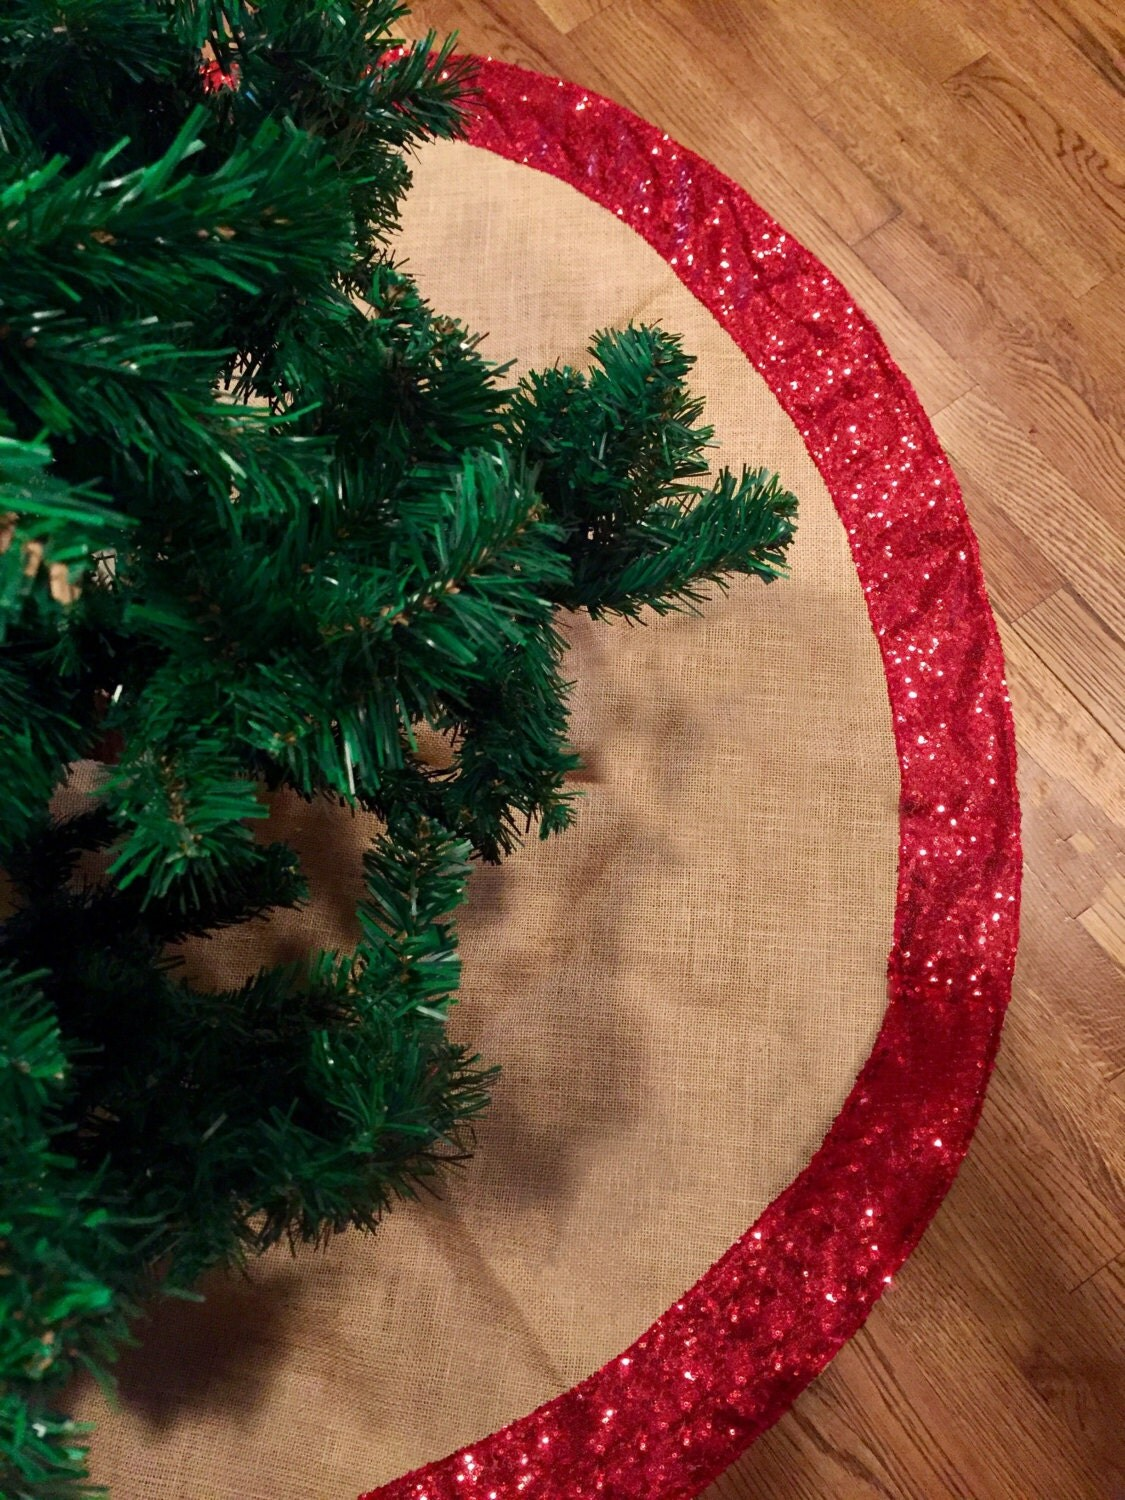 christmas tree skirt burlap and gold or red sequence christmas tree skirt tree skirt 60 inches diam christmas decor sequin sequence - Gold Christmas Tree Skirt